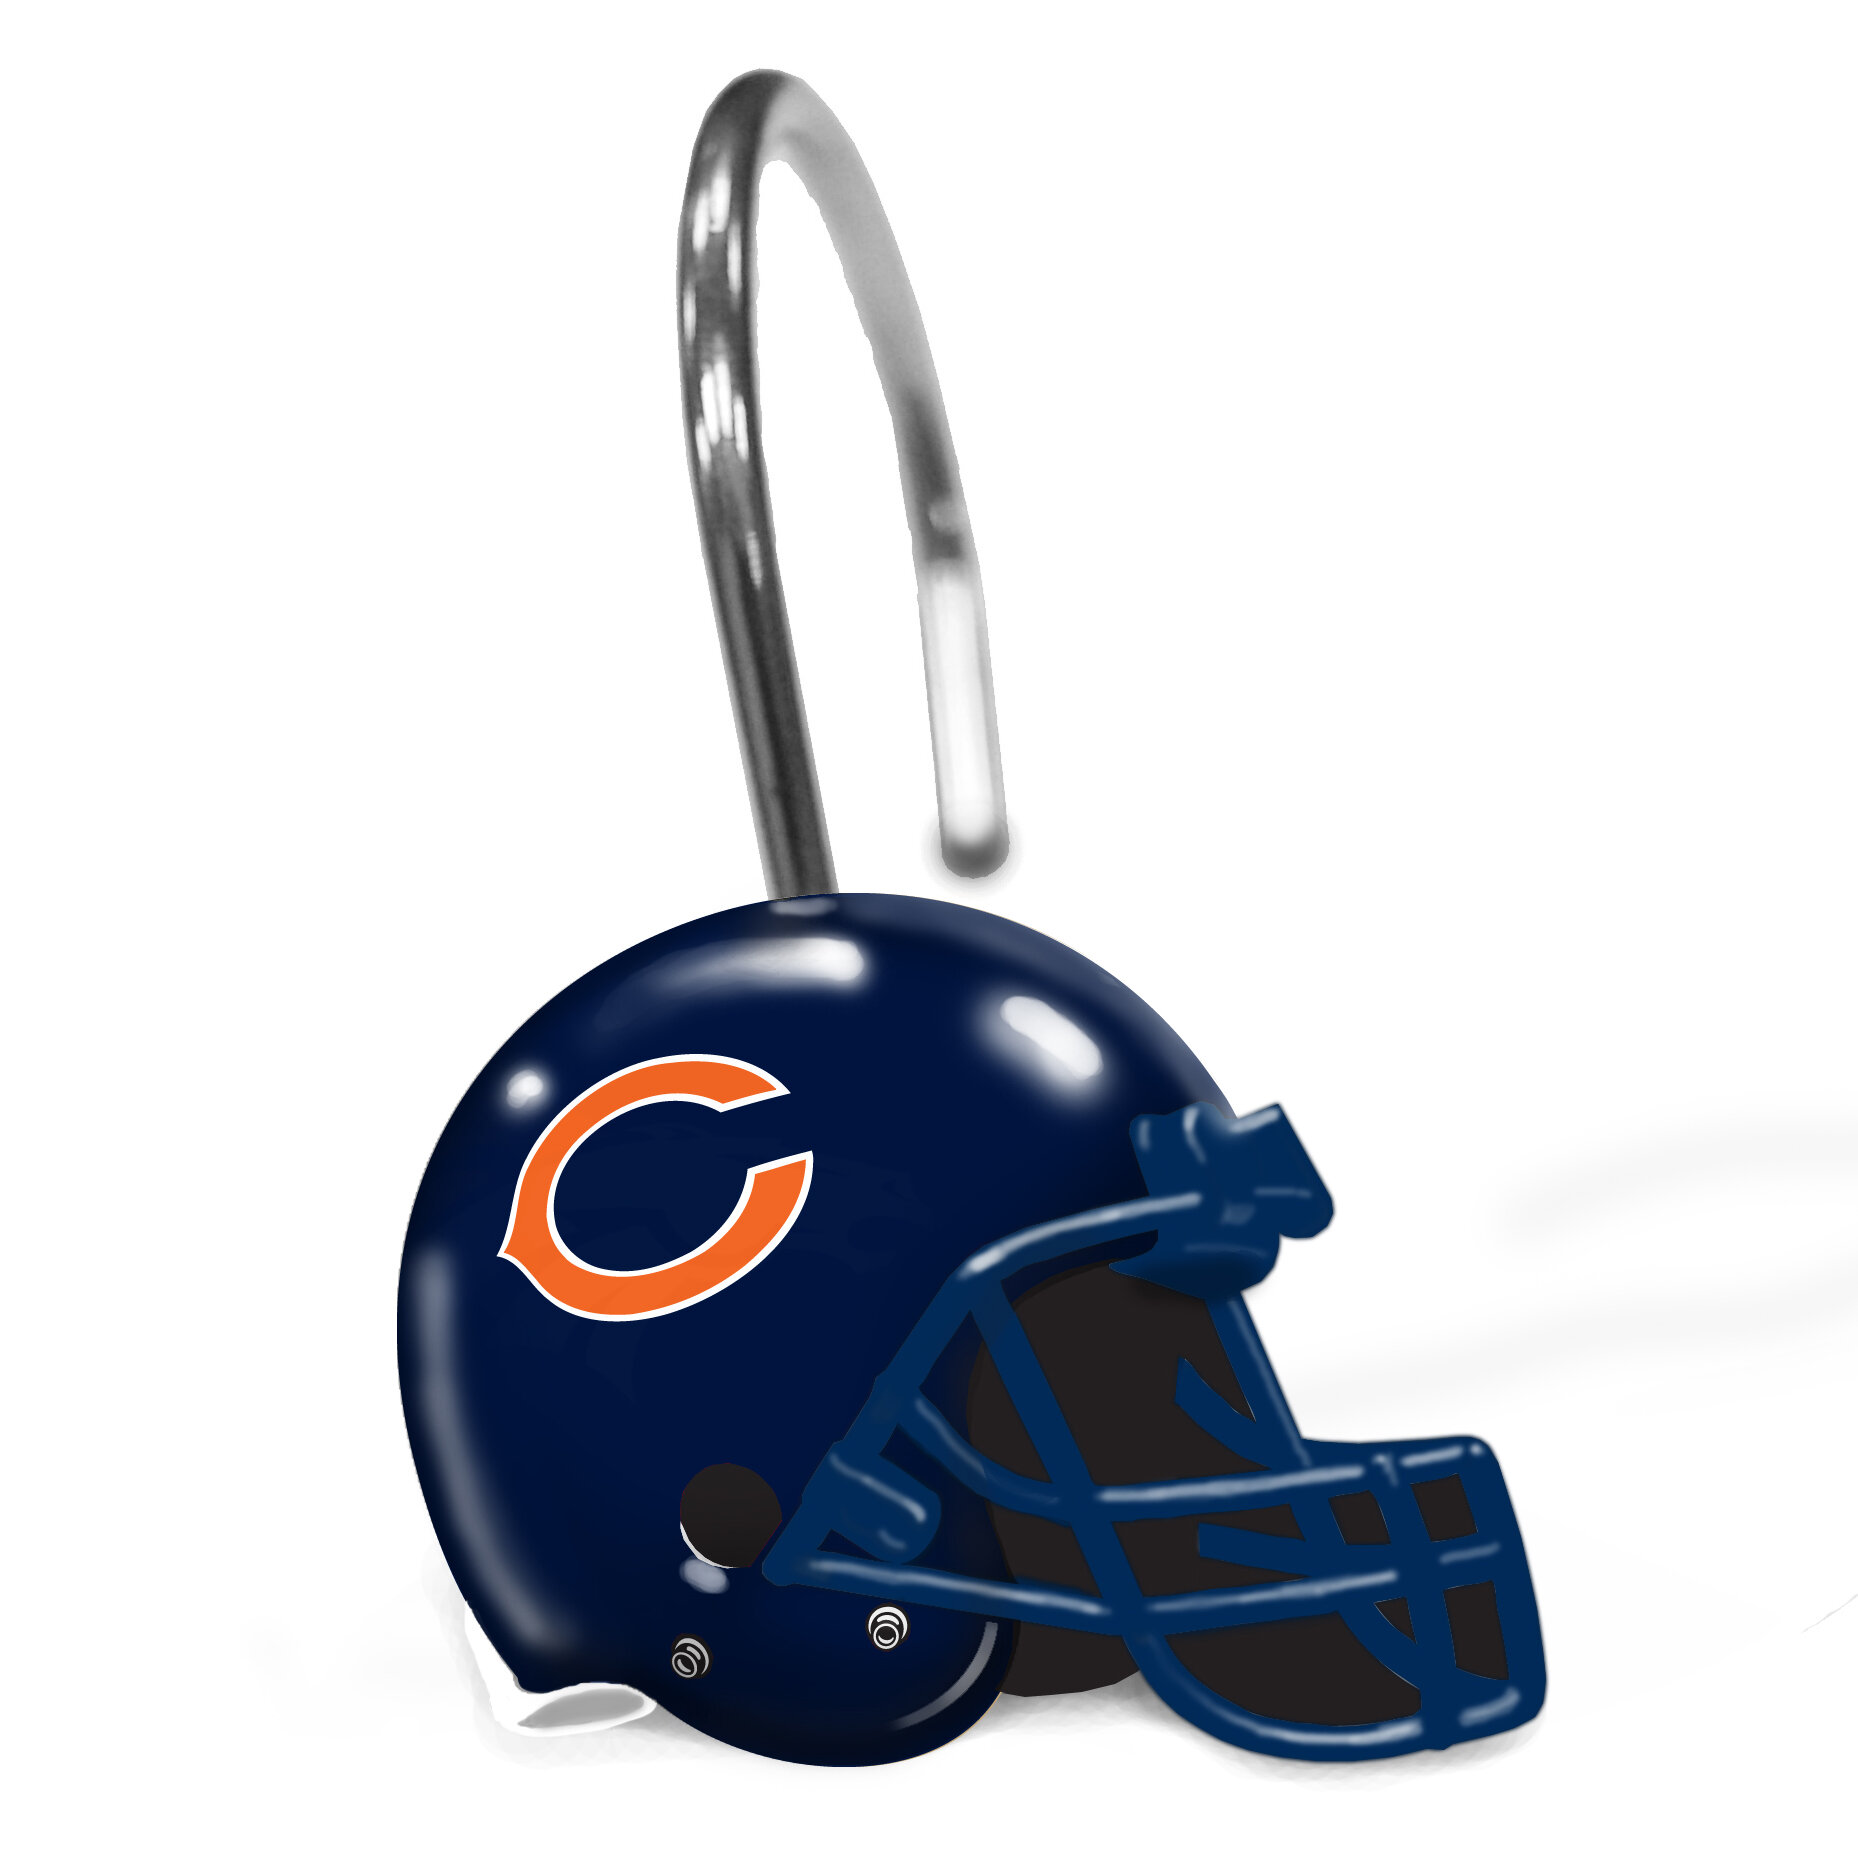 Details about Northwest Co. NFL Helmet Shower Curtain Rings